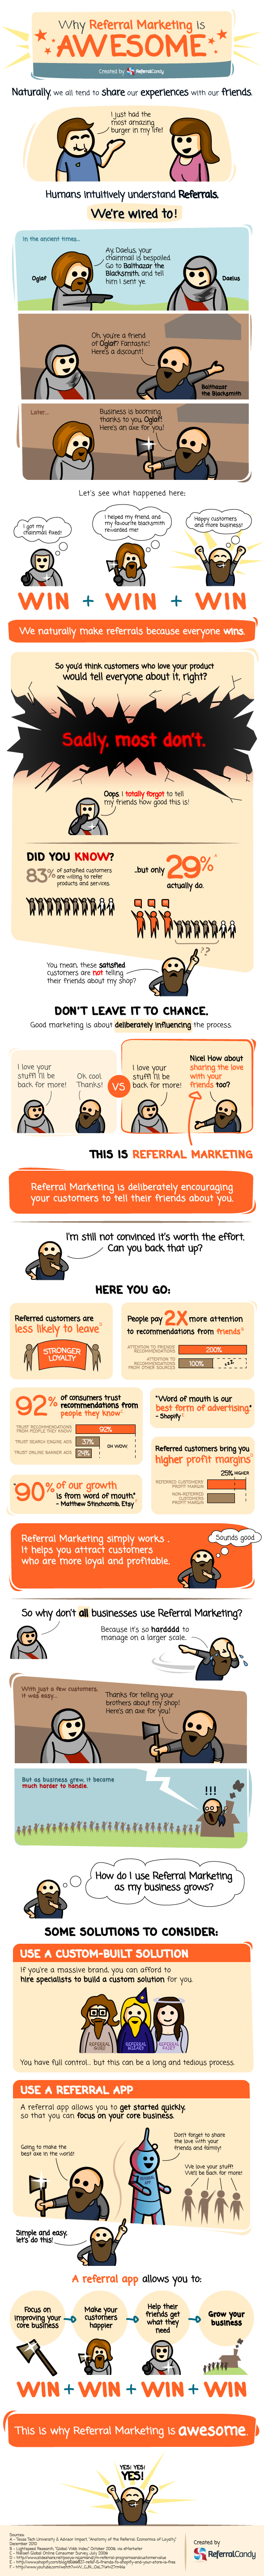 Referral Marketing Tips: Why Customer Referrals Are the Greatest Form of Marketing 2 - why referral marketing is awesome